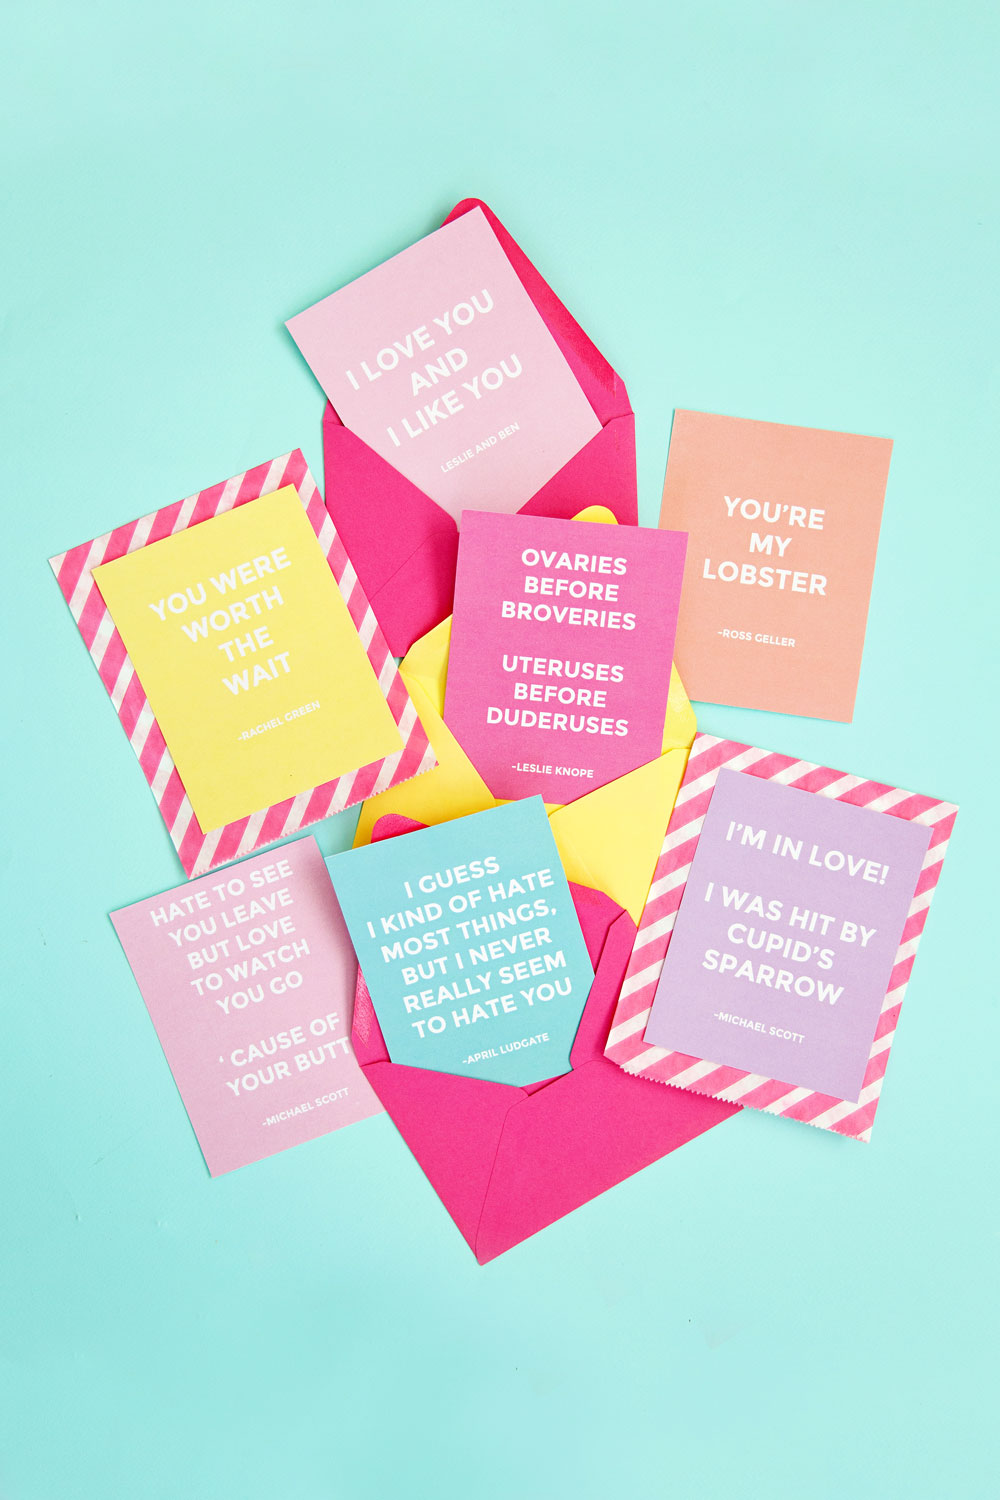 These funny quote Valentine's are sure to get some laughs. All quotes from The Office, Parks and Rec and Friends... some of the best shows ever!